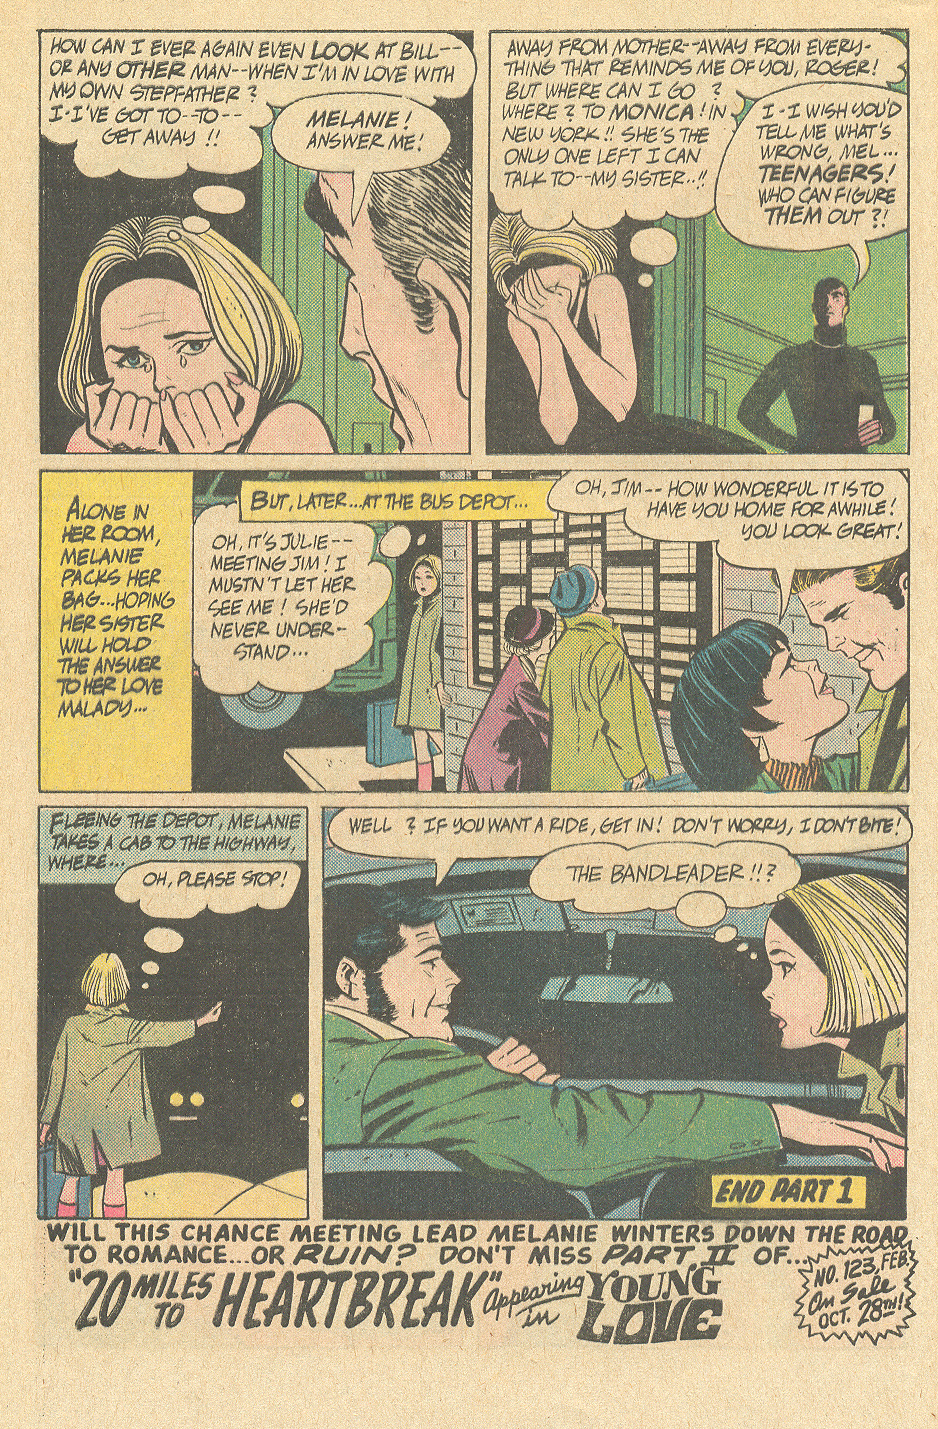 20 Miles to Heartbreak Alex Toth romance comic DC story